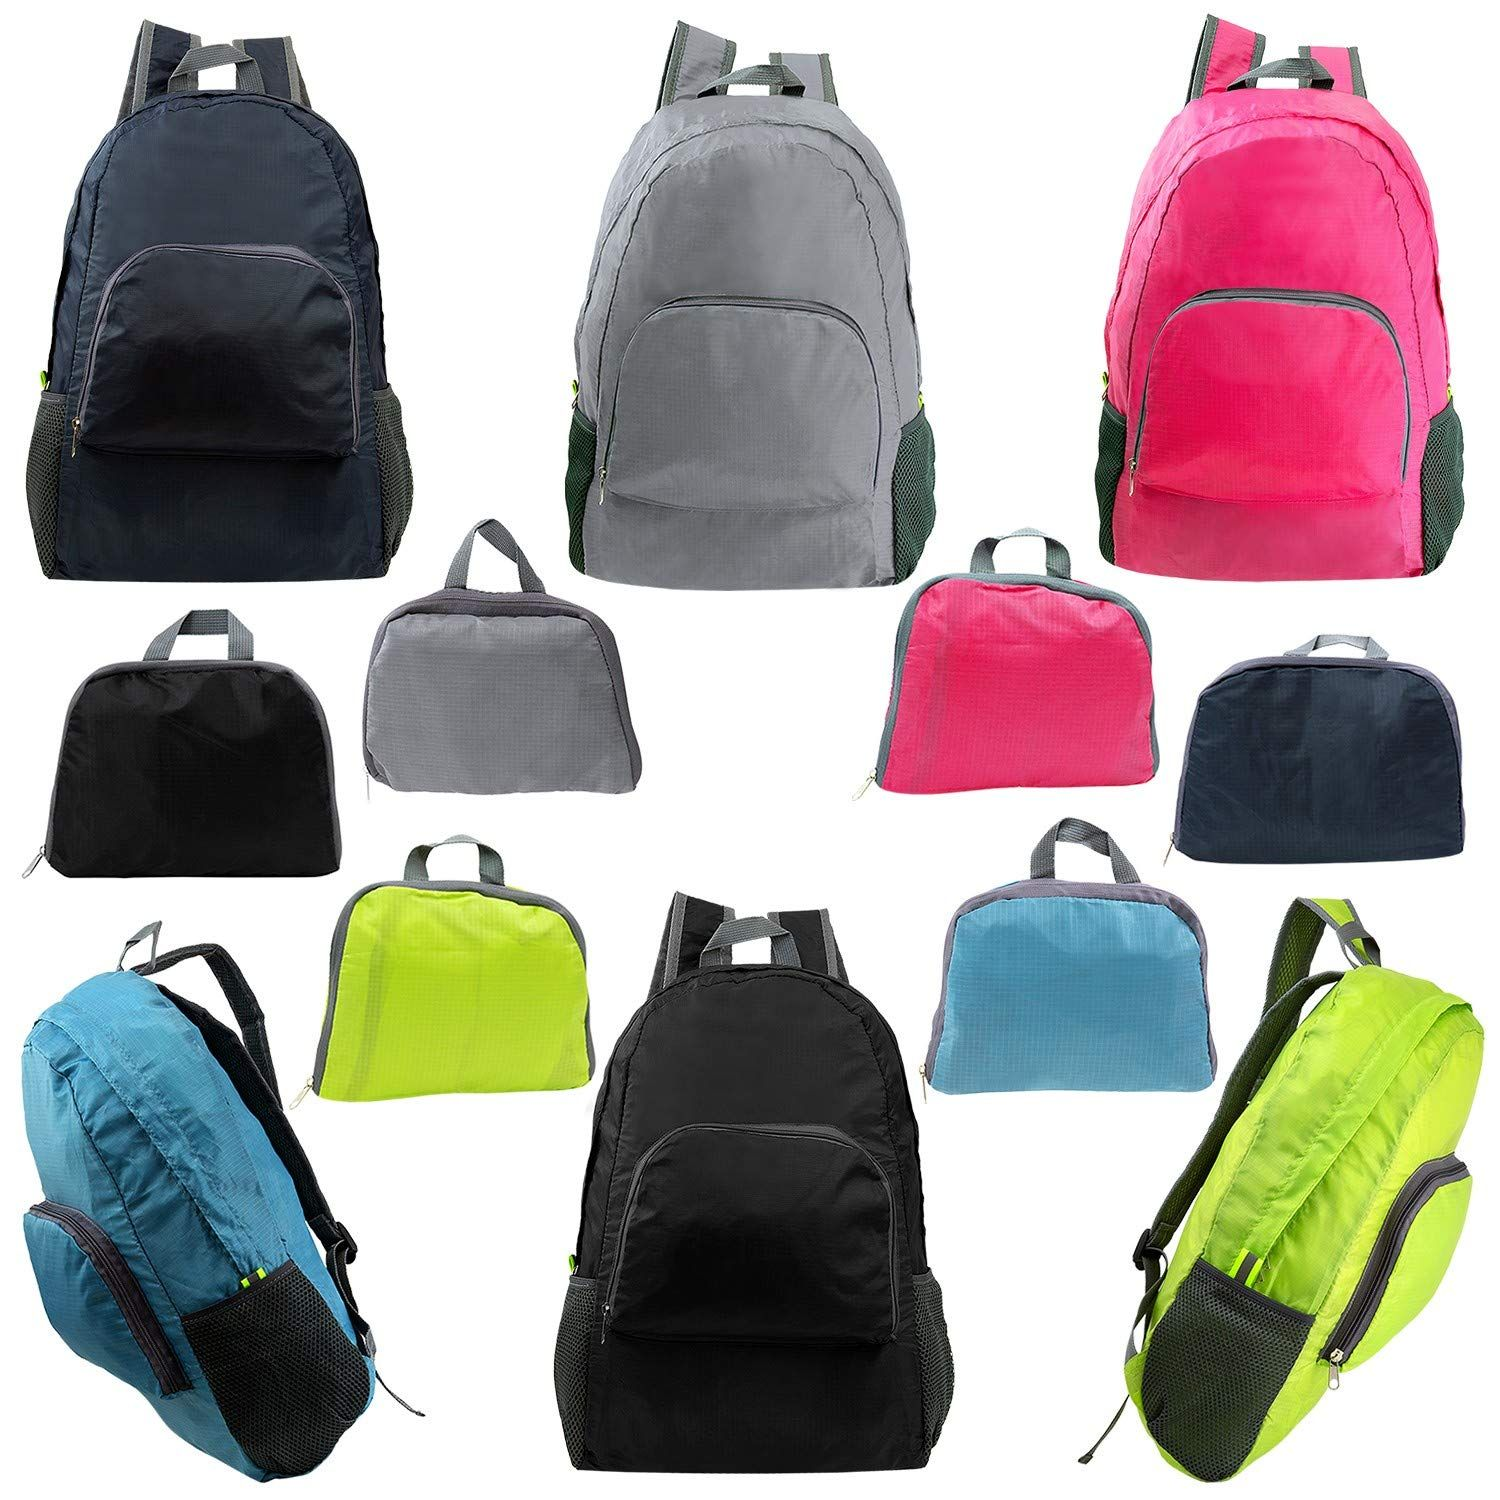 check out f2f81 16122 Our backpacks! They re Amazing, Abundant, Astonishing, Astounding And A-1  On All Accounts!